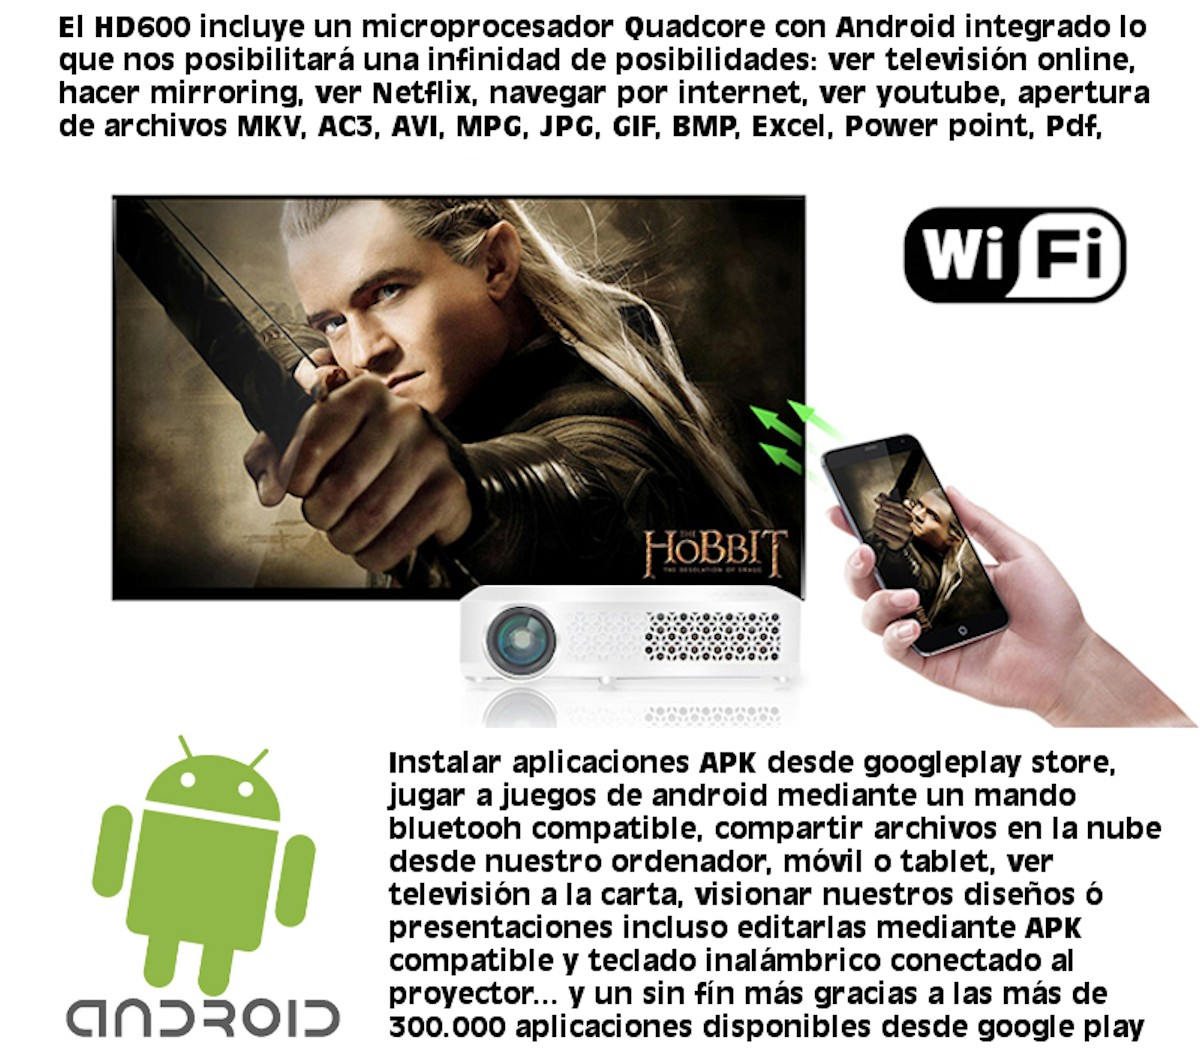 el HD600 incluye un microprocesador quadcore con android integrado lo que nos posibilitará infinidad de posibilidades: ver la television online, hacer mirroring, ver netflix, navegar por internet, ver youtube, apertura de archivos, mkv, ac3, avi, mpg, jpg, gif, bmp, excel, power point, pdf